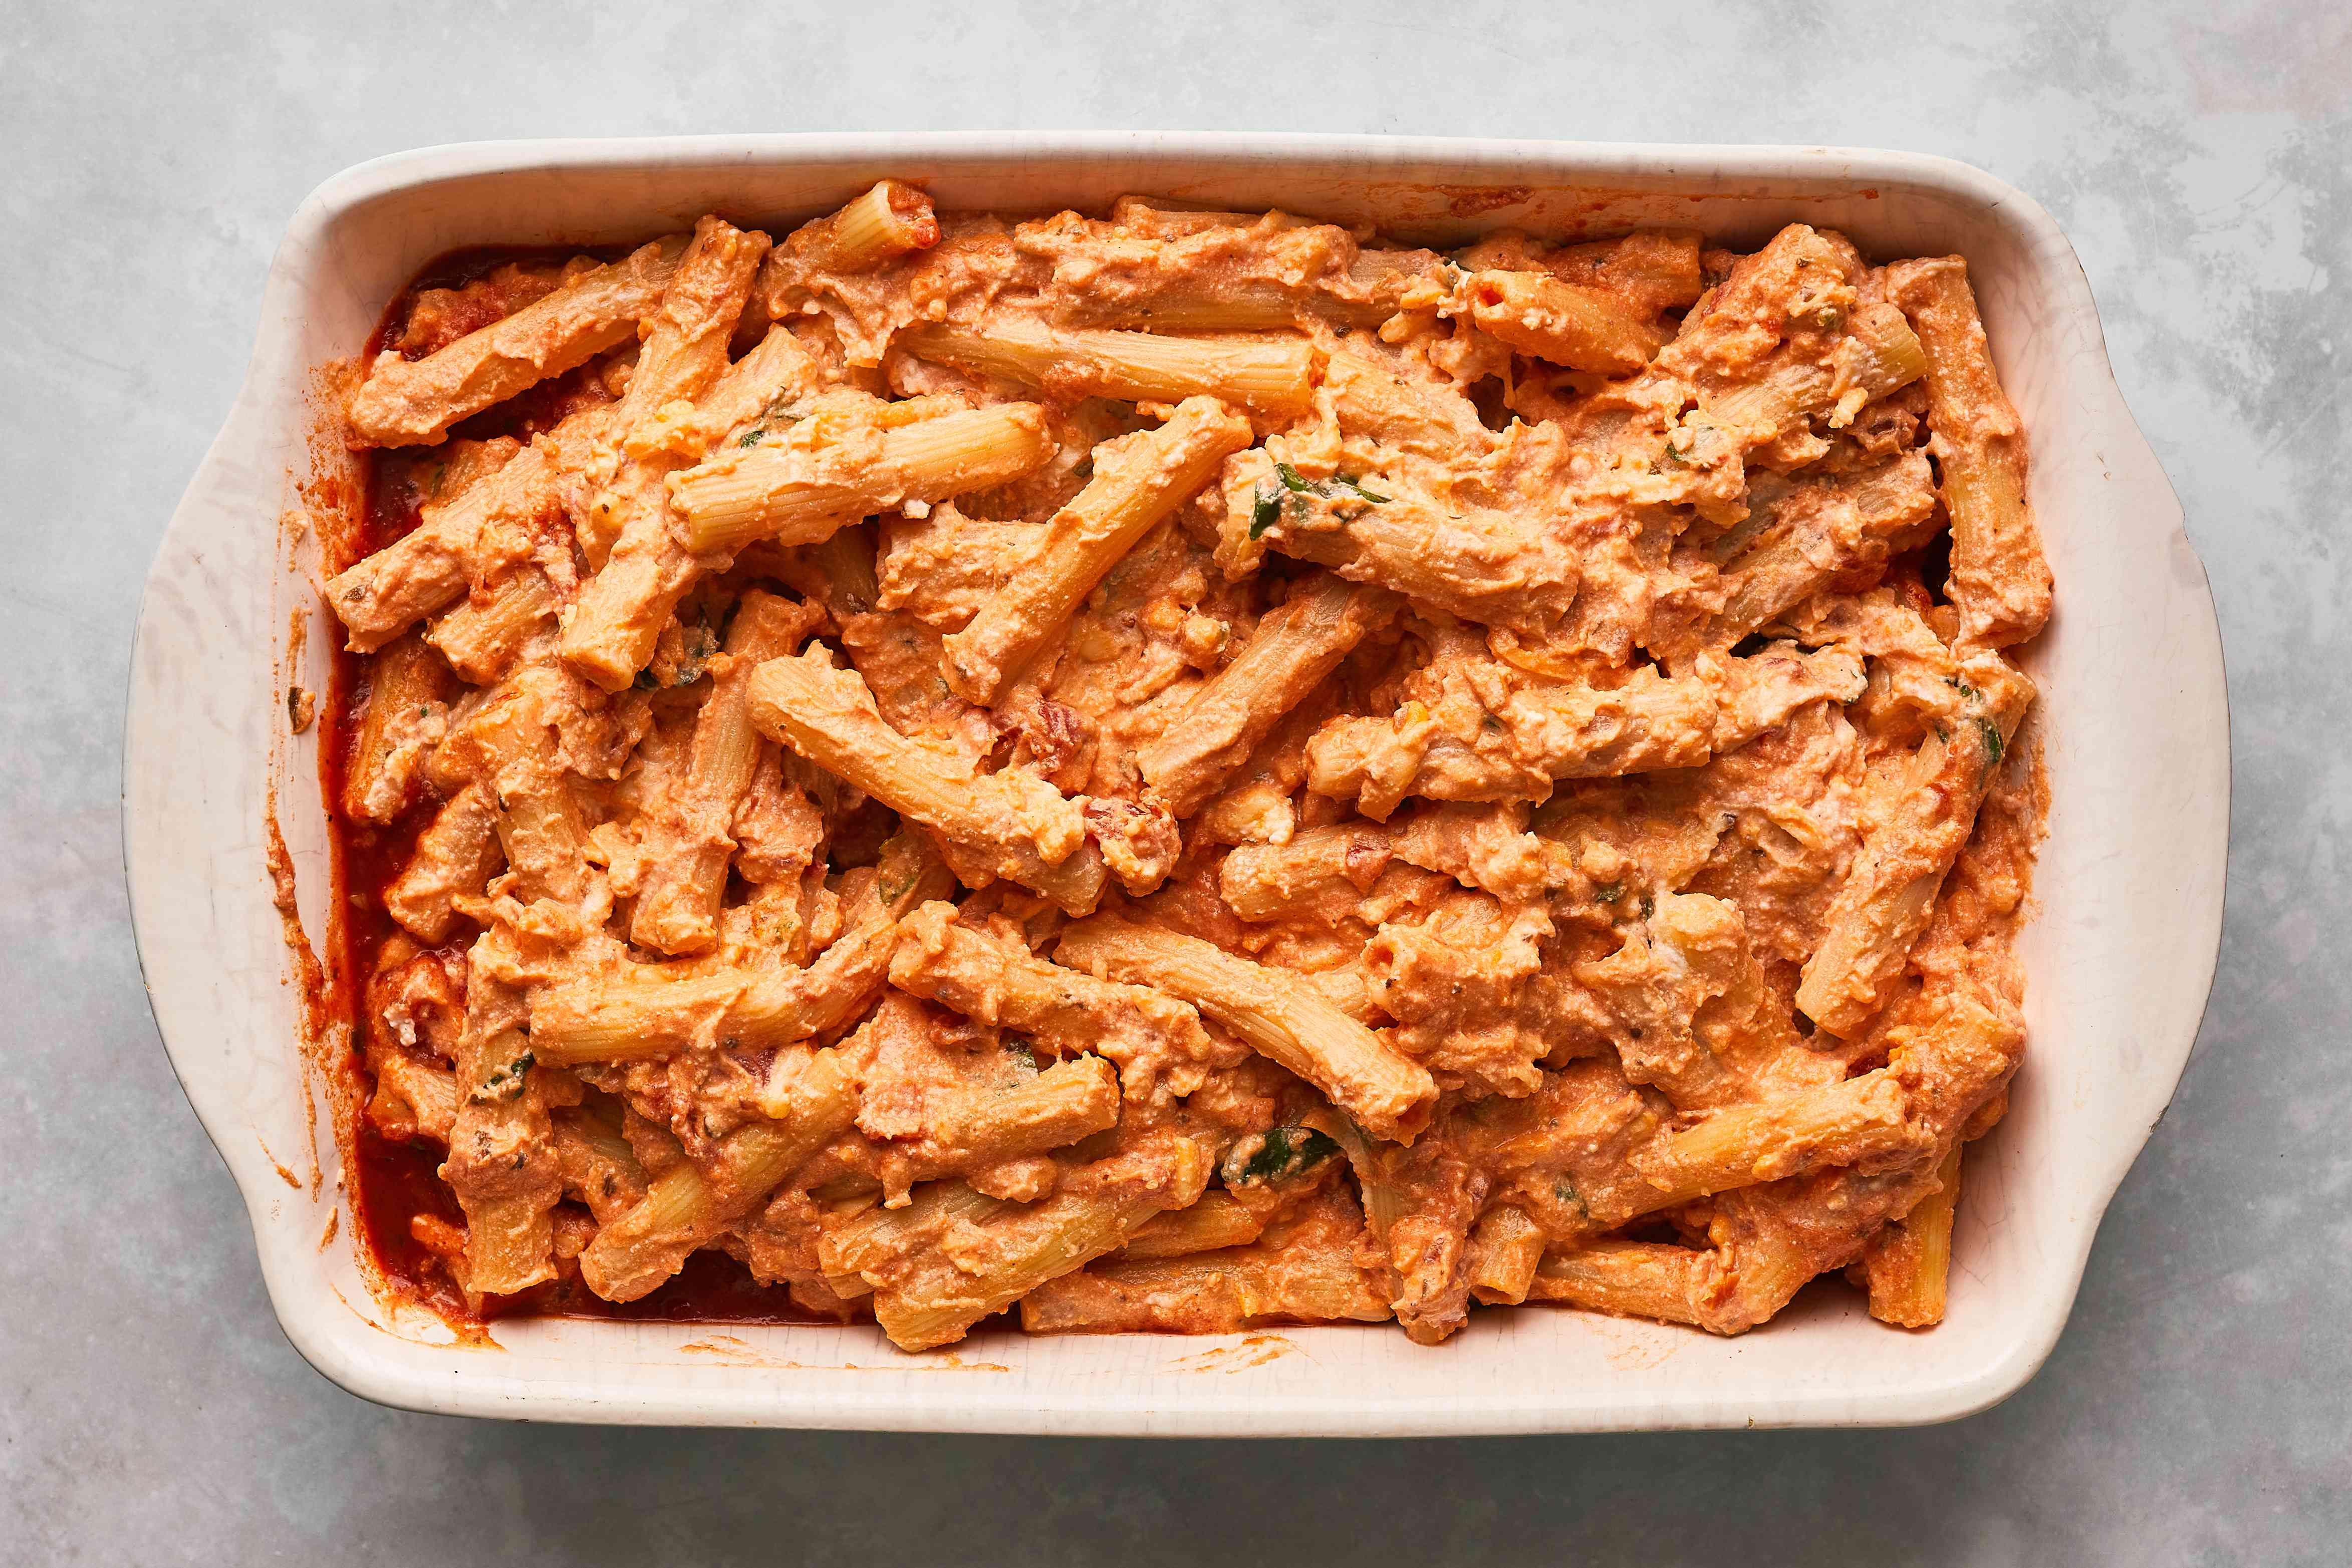 ziti with tomato sauce and cheese sauce in a baking pan